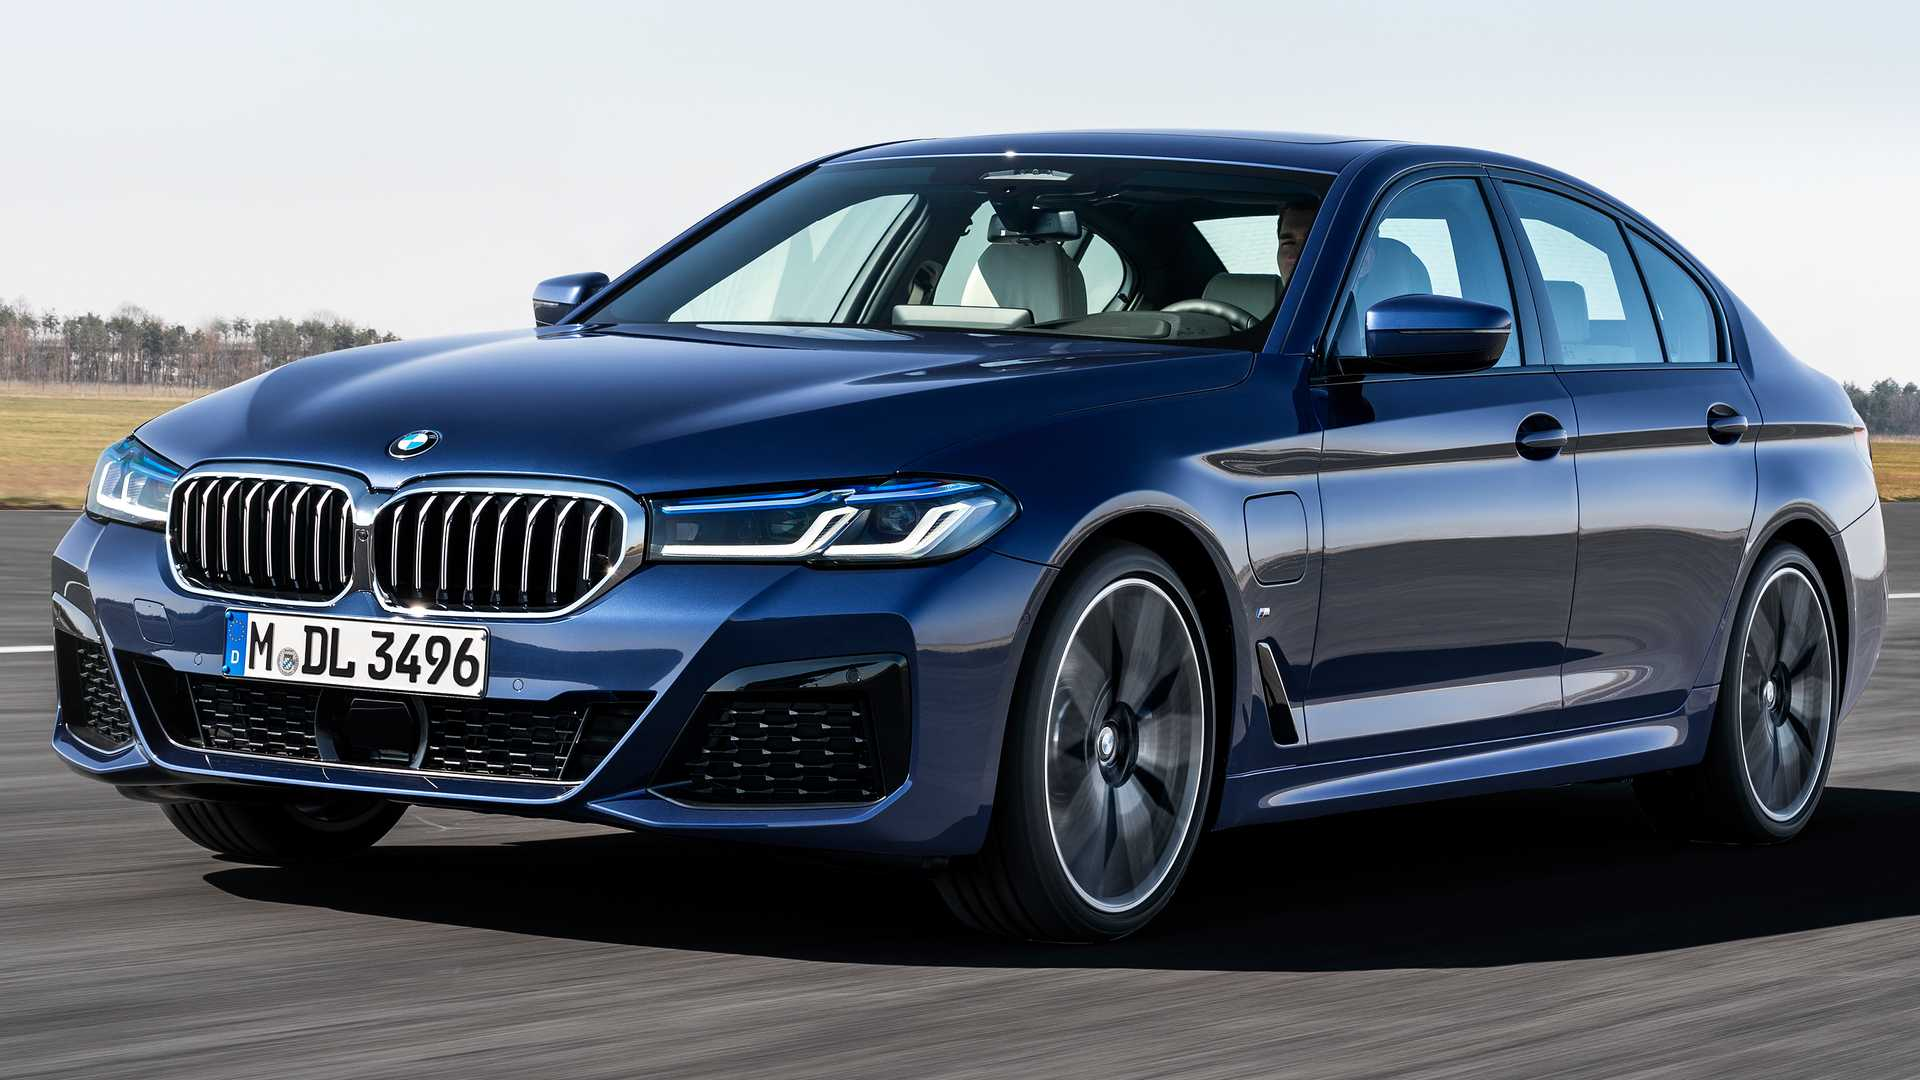 2021 BMW 5 Series Packs Refreshed Design, New Electrified Powertrains